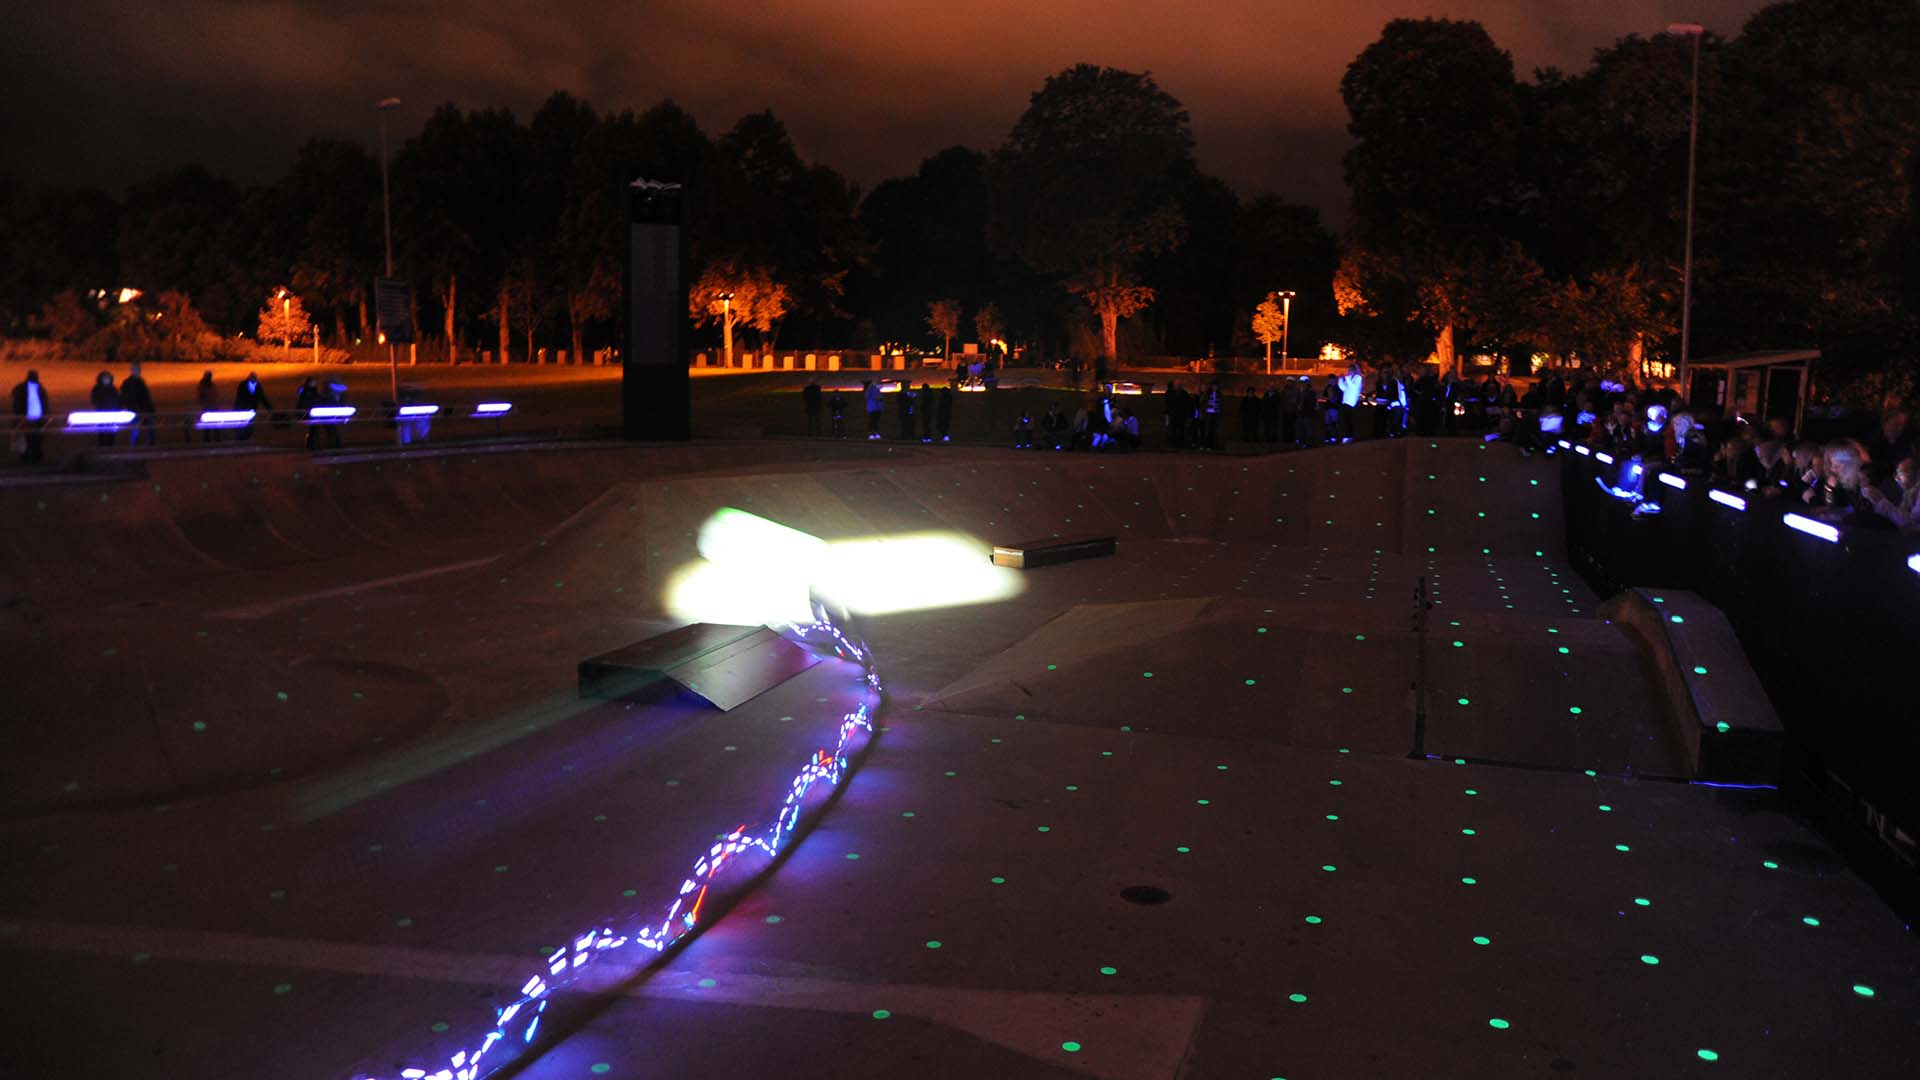 Urban skate park italia luce light design evento illuminazione